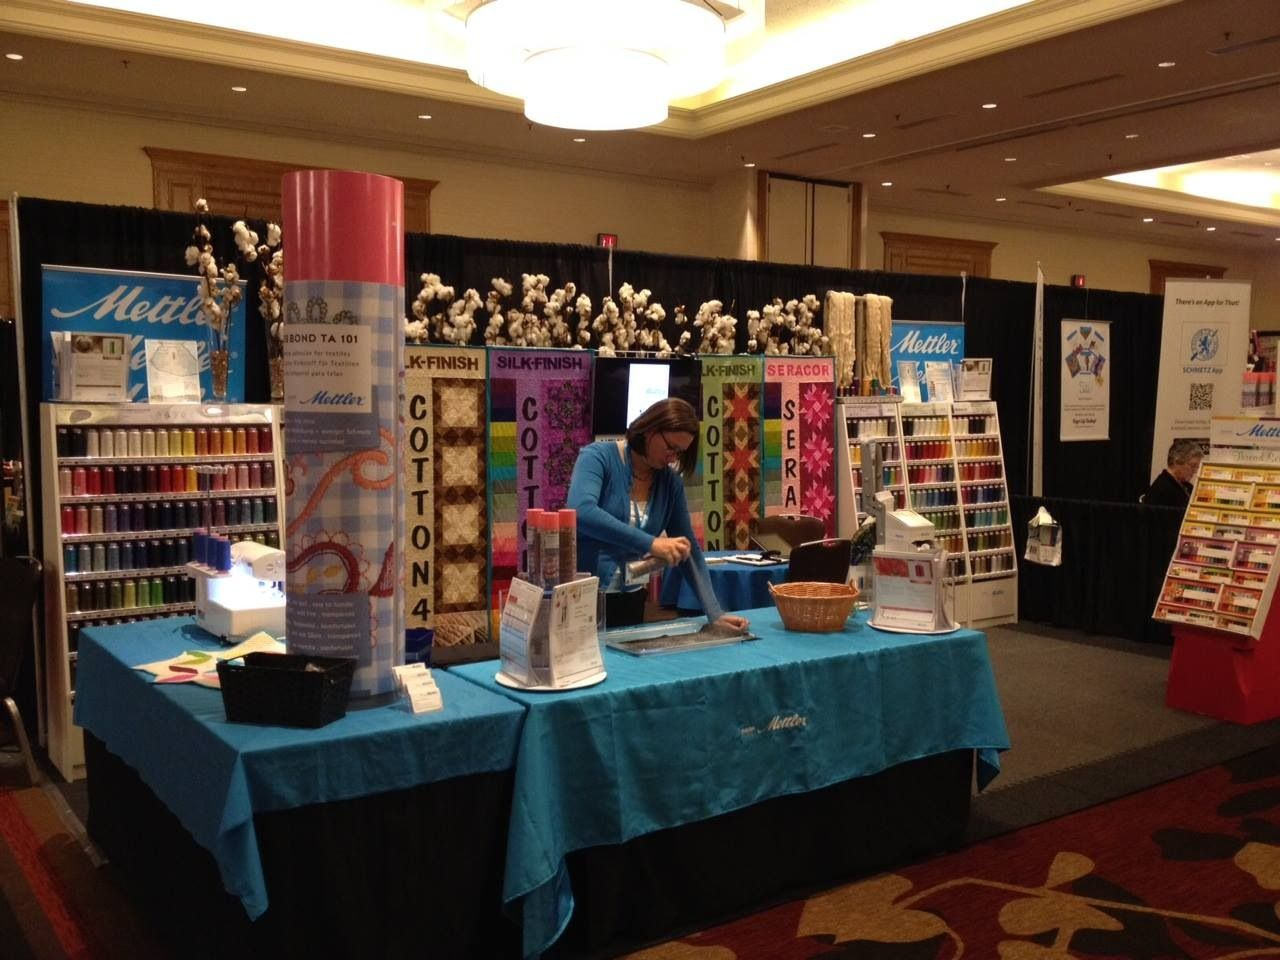 This was the reason I own a Cameo cutting machine. I was contracted by Mettler threads to make backdrops for their tradeshow booth. This picture shows only 4 of the 16 2'x6′ quilts I made to put on grid wall to show the new colors of the new cones. When we designed the quilts using … Continue reading Mettler Thread Trade Show Booth Backdrops →